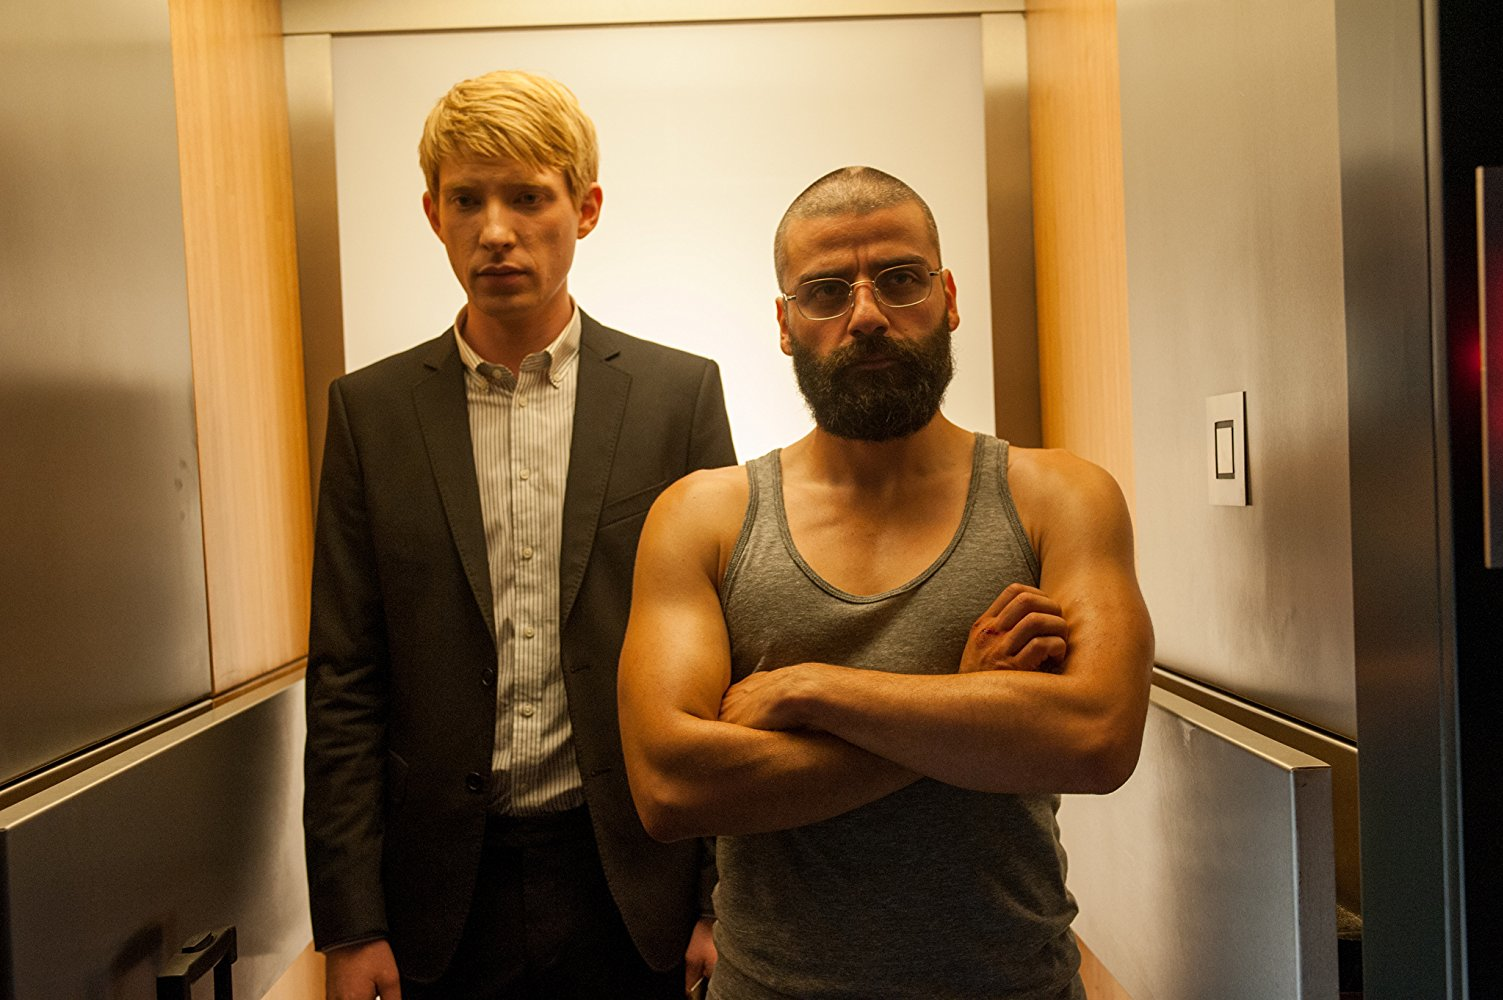 D(l to r) Domhnall Gleeson as Caleb and Oscar Isaac as the A.I.'s creator Nathan in Ex Machina (2015)